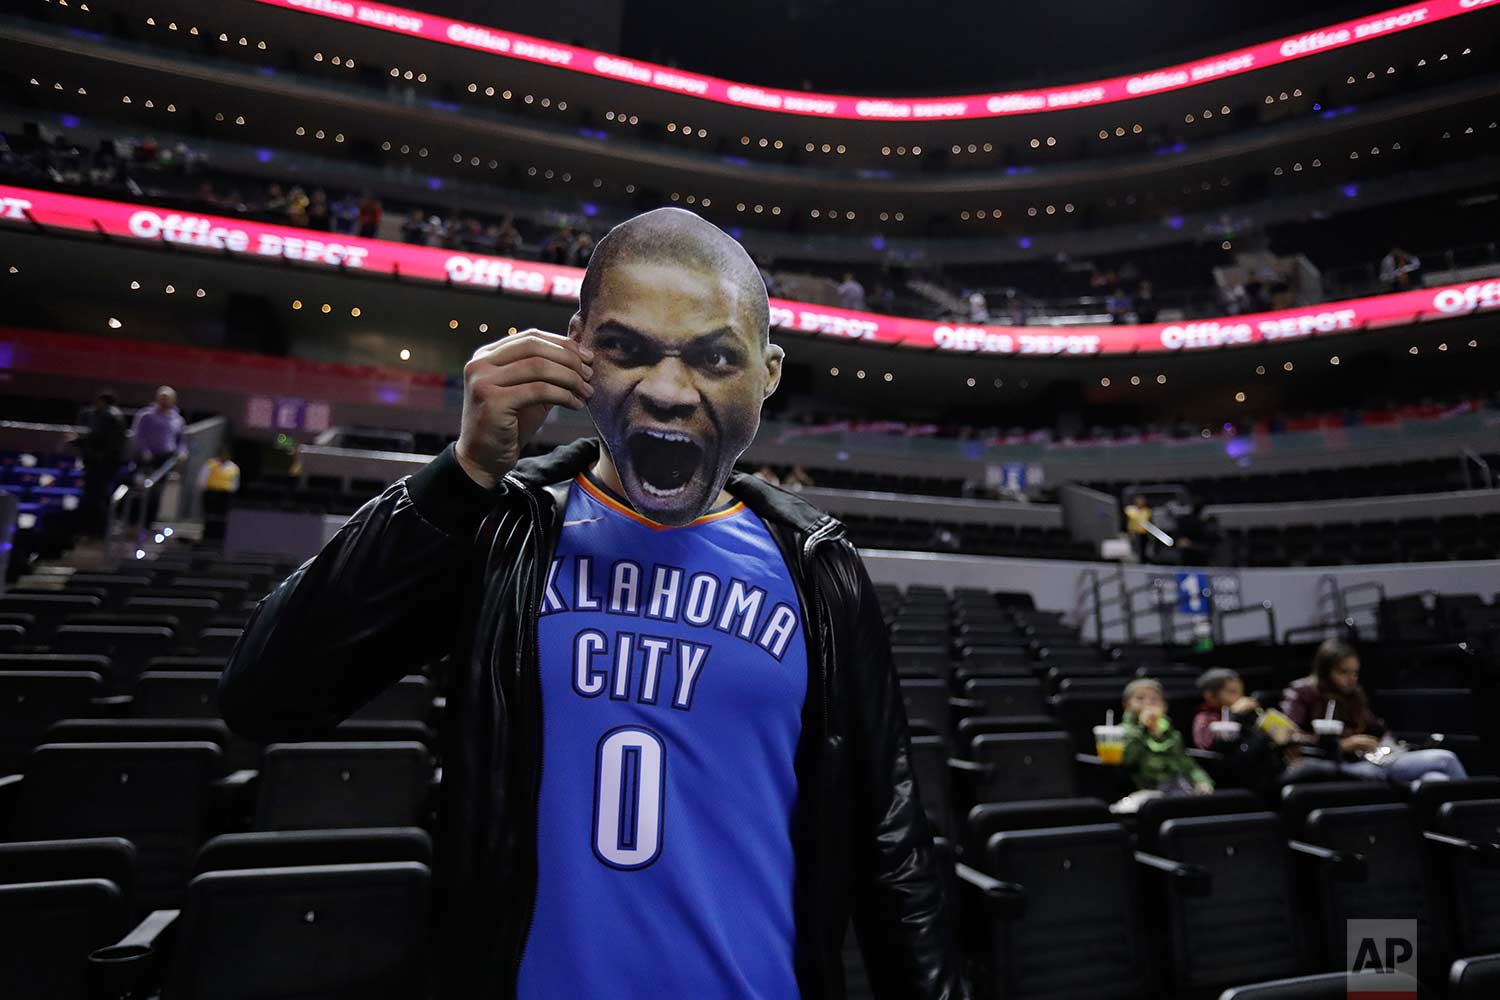 Basketball fan David Martinez, of Monterrey, poses with a cardboard cutout of Oklahoma City Thunder's player Russell Westbrook before a regular-season NBA basketball game against the Brooklyn Nets in Mexico City, Thursday, Dec. 7, 2017. (AP Photo/Rebecca Blackwell)